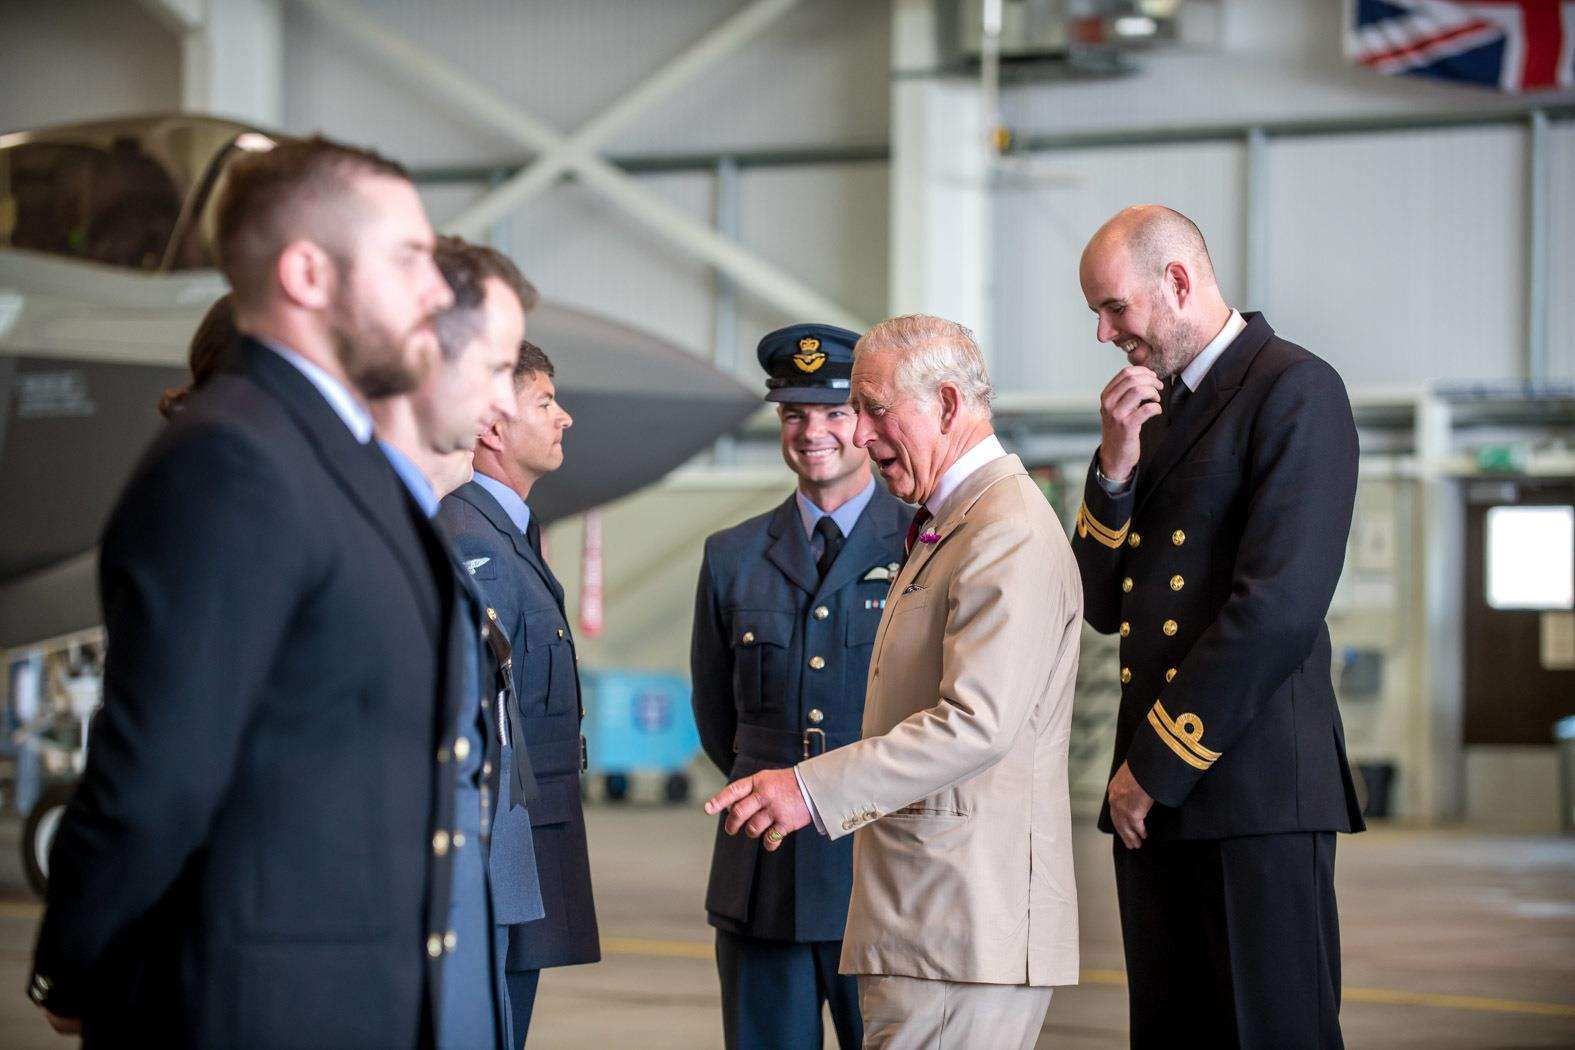 HRH The Prince of Wales visits RAF Marham to see the new F35 Lightning II aircraft of 617 Squadron. HRH Prince Charles meets RAF and Royal Navy personnel.. (3315076)